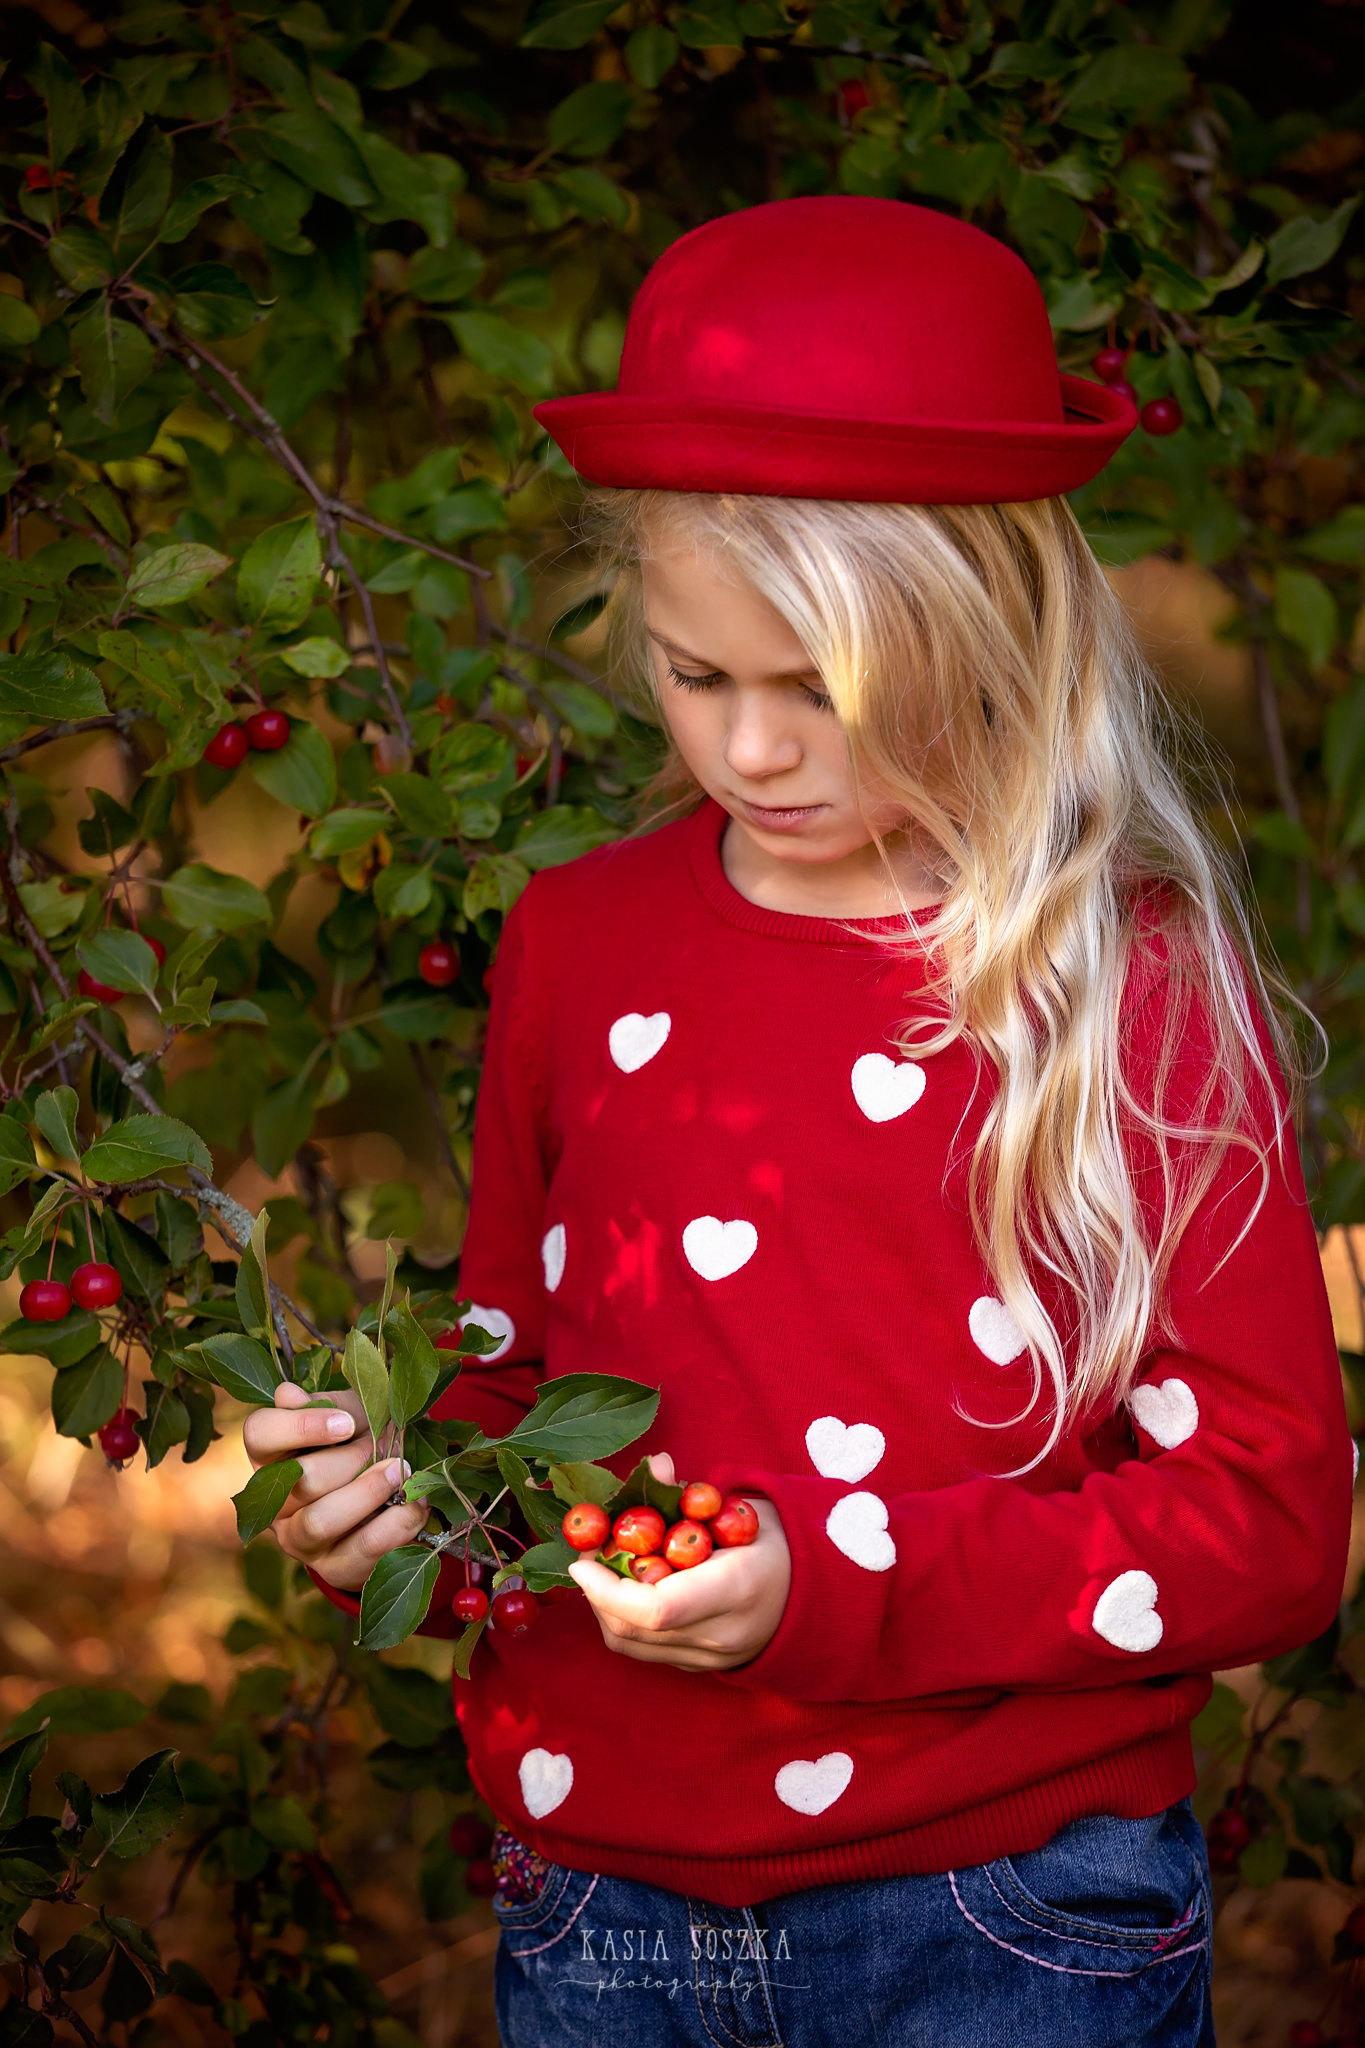 Children photography, child photographer Leeds, York, Harrogate, Bradford: beautiful blond girl in a red sweater holding a berry tree branch